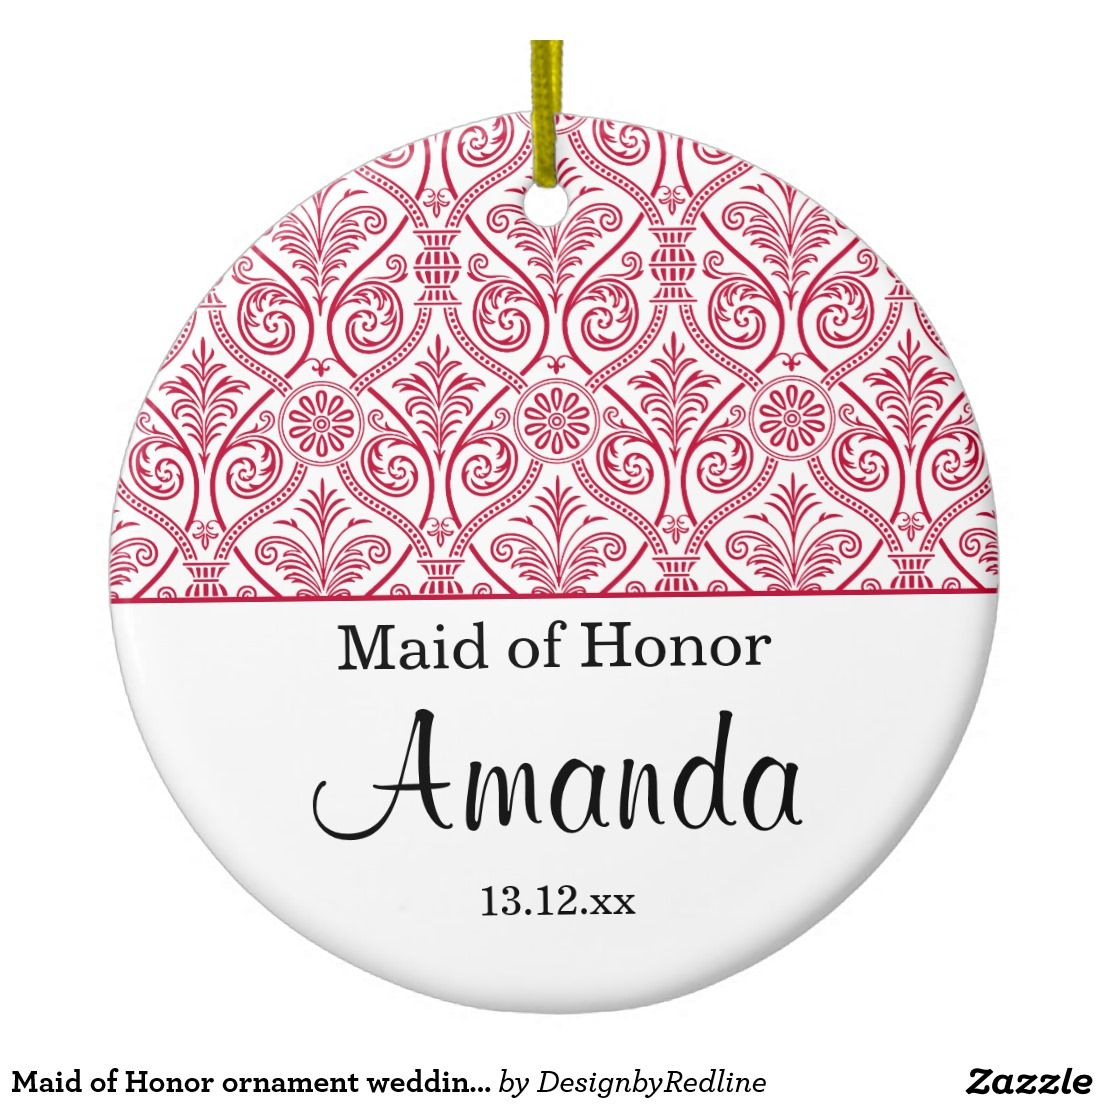 Maid of Honor ornament wedding favor - red elegant damask tree ...